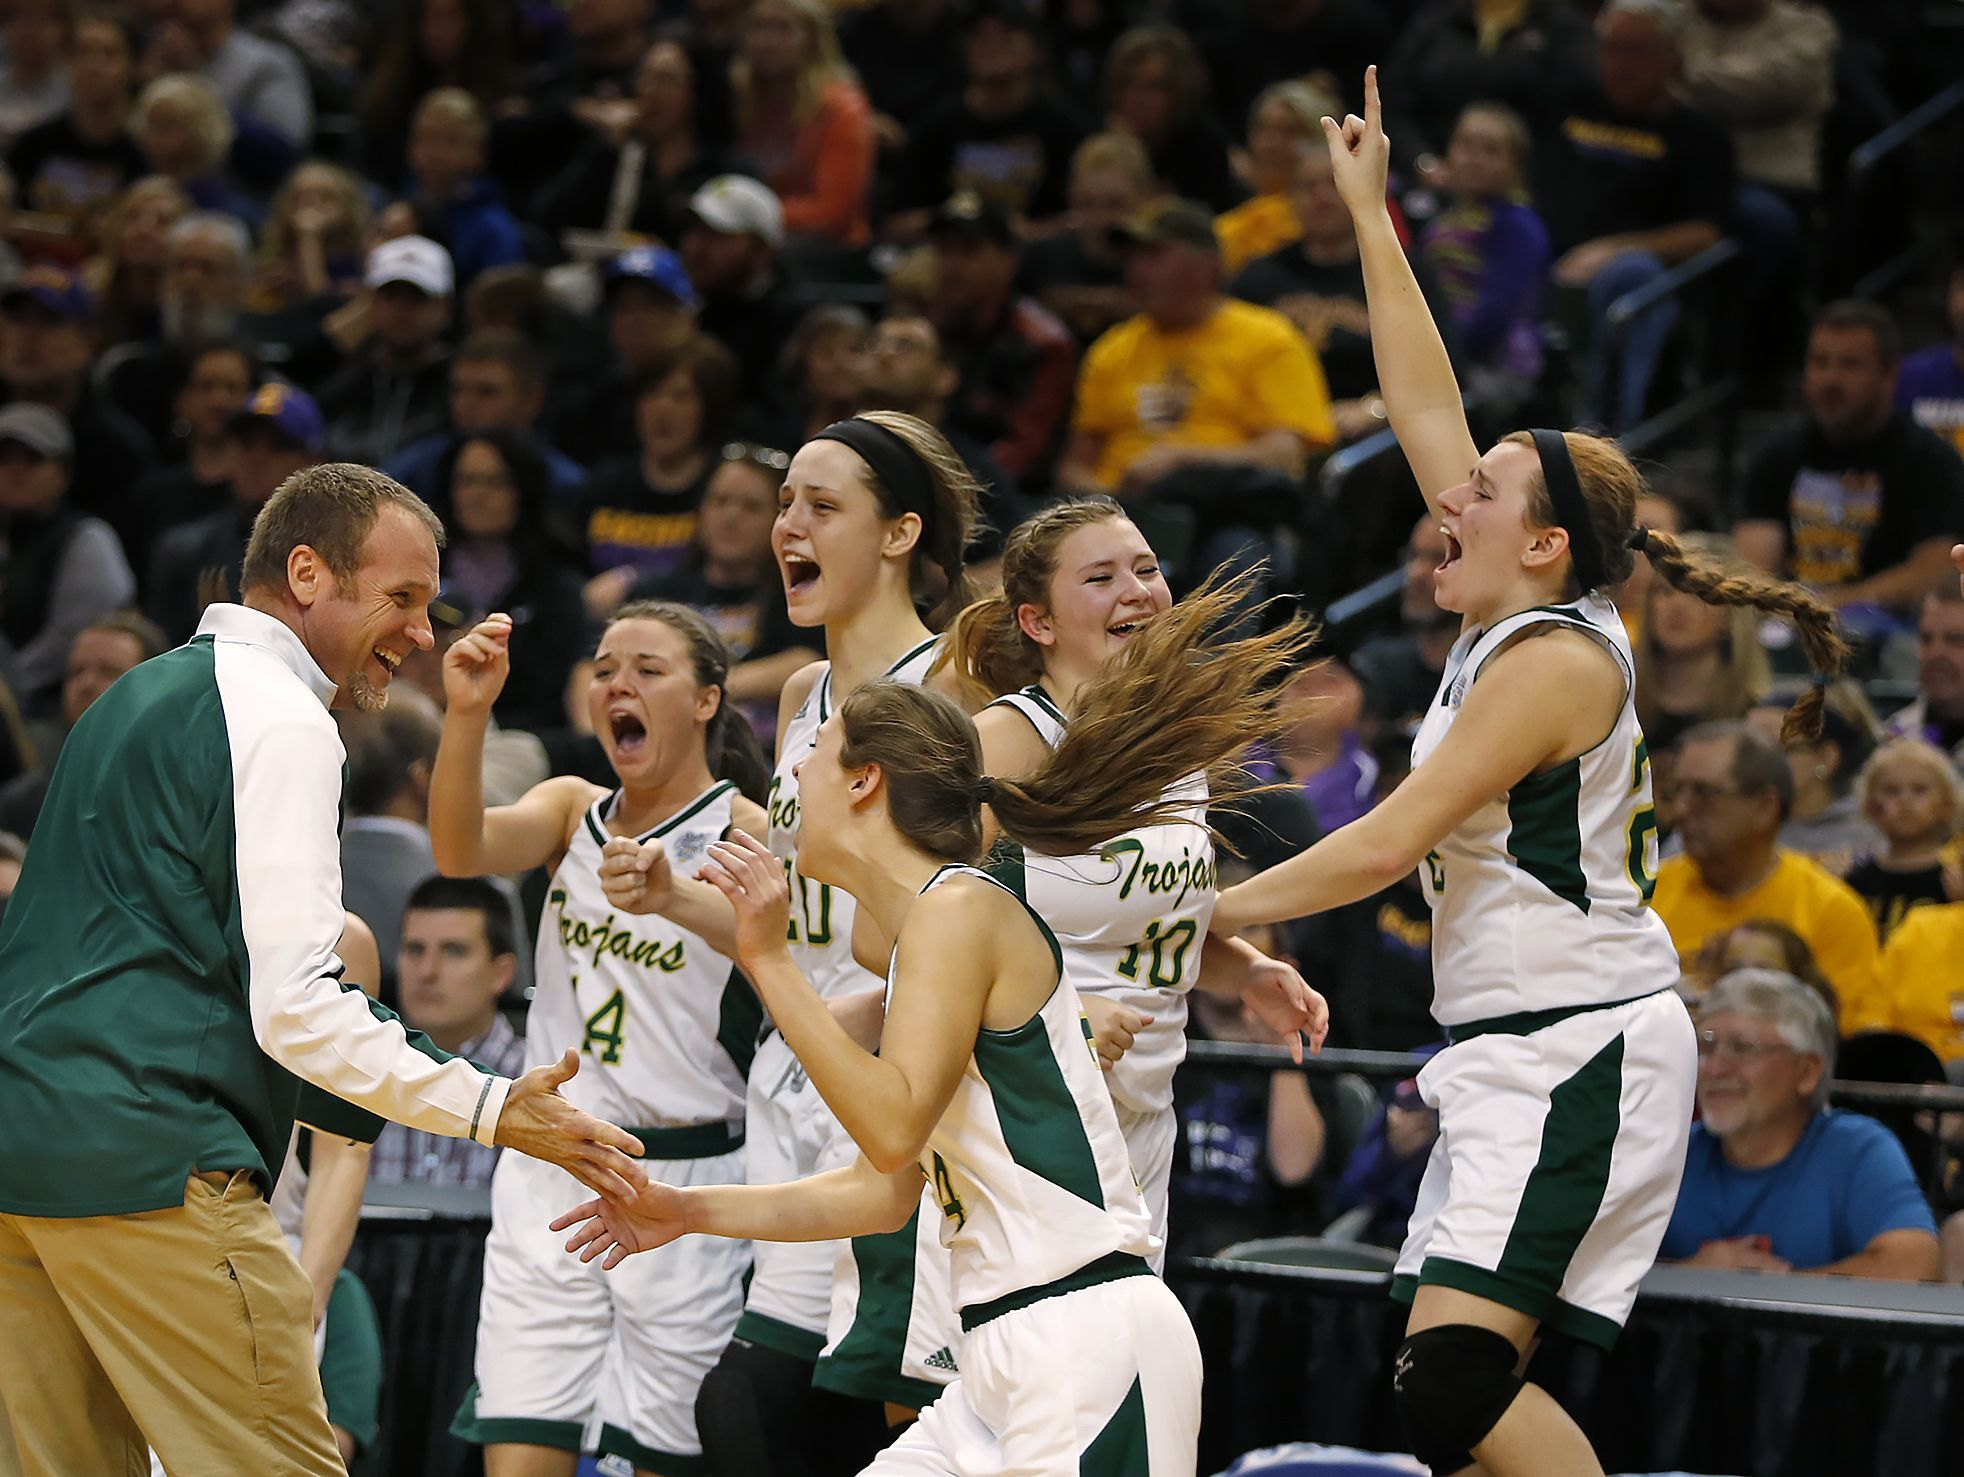 Wood Memorial coach Johnnie Bartley (left) and his players celebrate their victory in the 2017 IHSAA Class A Girls Basketball State Finals on Saturday in Indianapolis at Bankers Life Fieldhouse. Wood Memorial beat Union City 68-43.